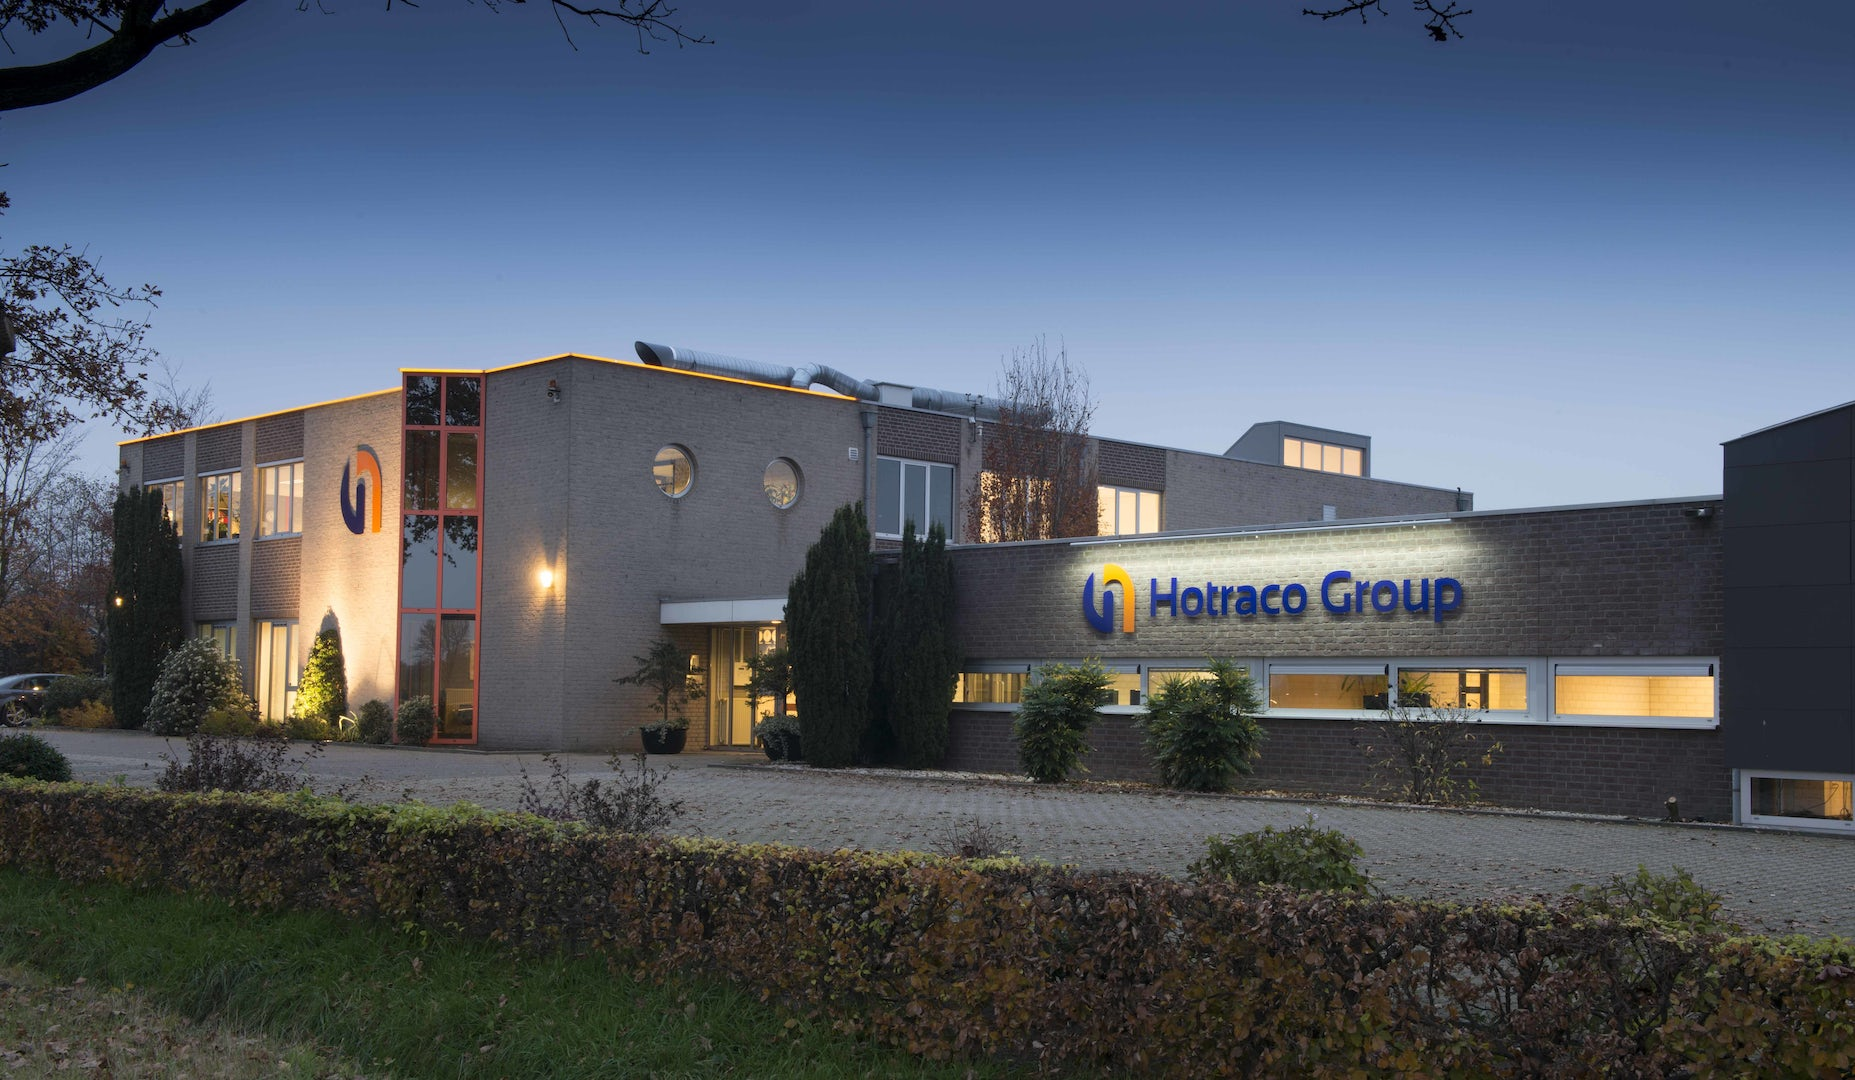 About Hotraco Footer